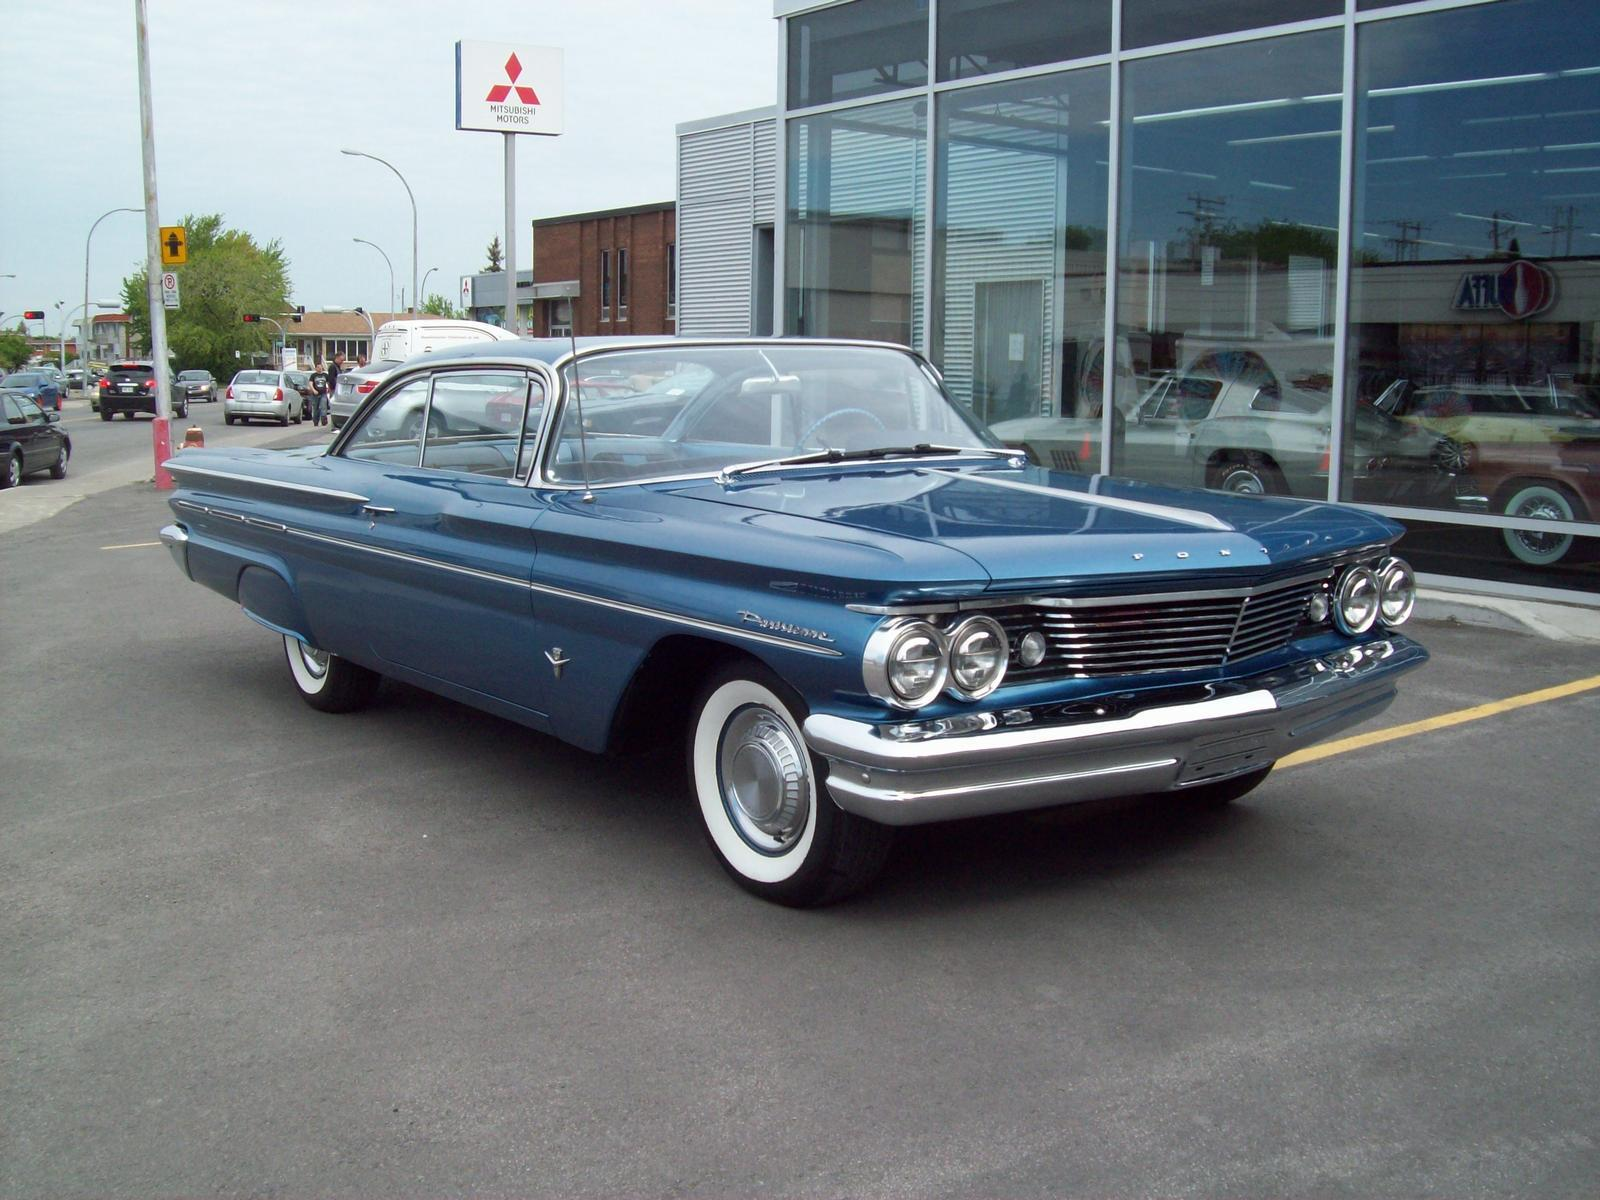 Pontiac Parisienne Bubble Top 1960